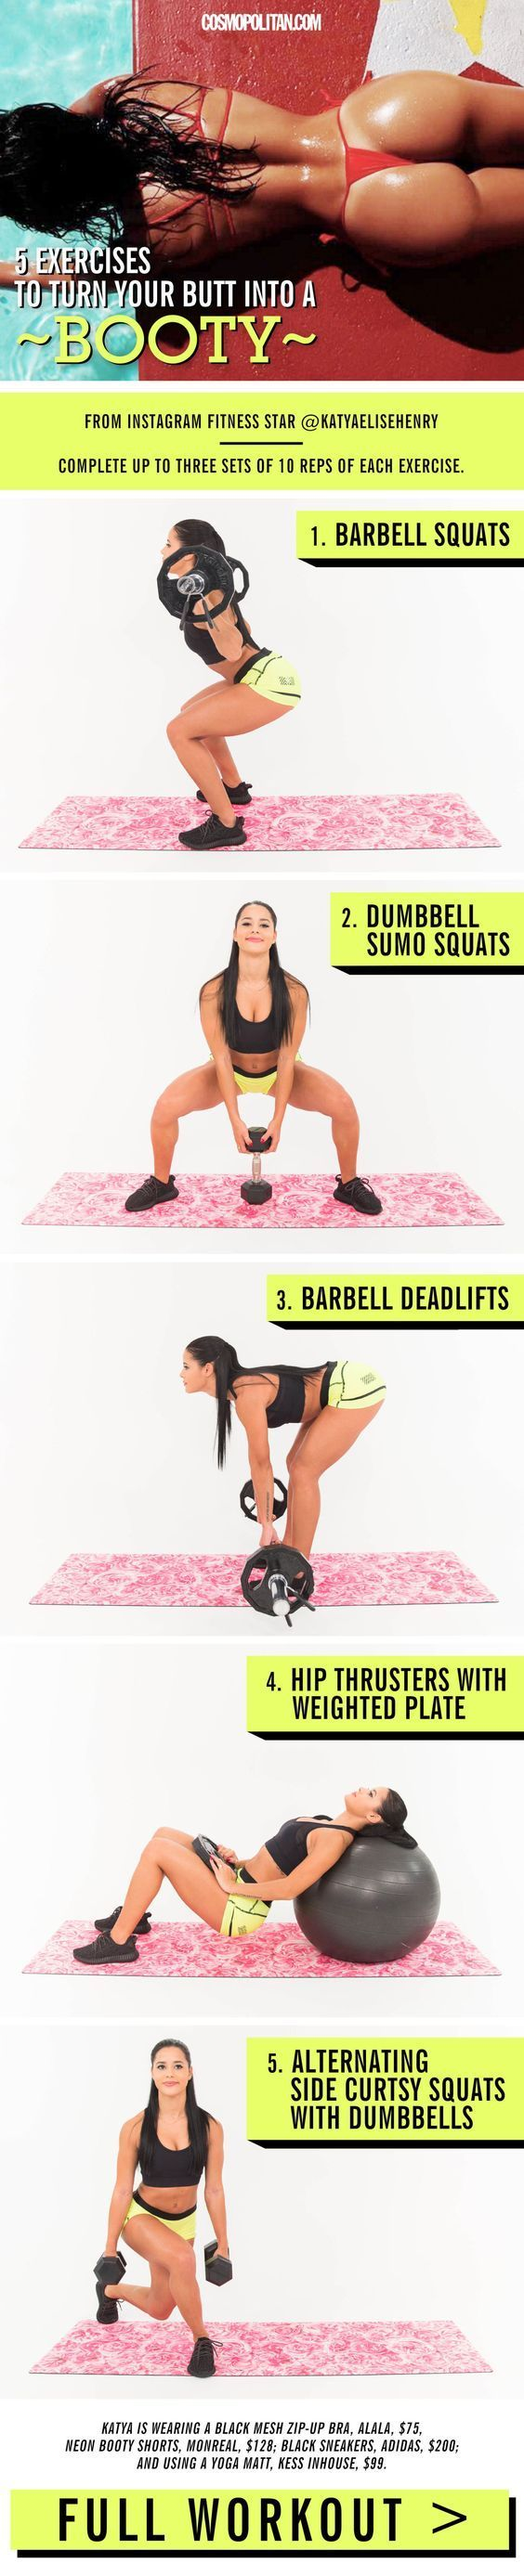 BUTT WORKOUT FROM INSTAGRAM FITNESS STAR KATYA HENRY. Here, she shares her #1 secret to building a round, tight tush, plus the best butt workout moves to make your booty Instagram-worthy asap! Complete three sets of these moves, doing 10 reps of exercise. Find the full workout and more easy butt workout tips here!: